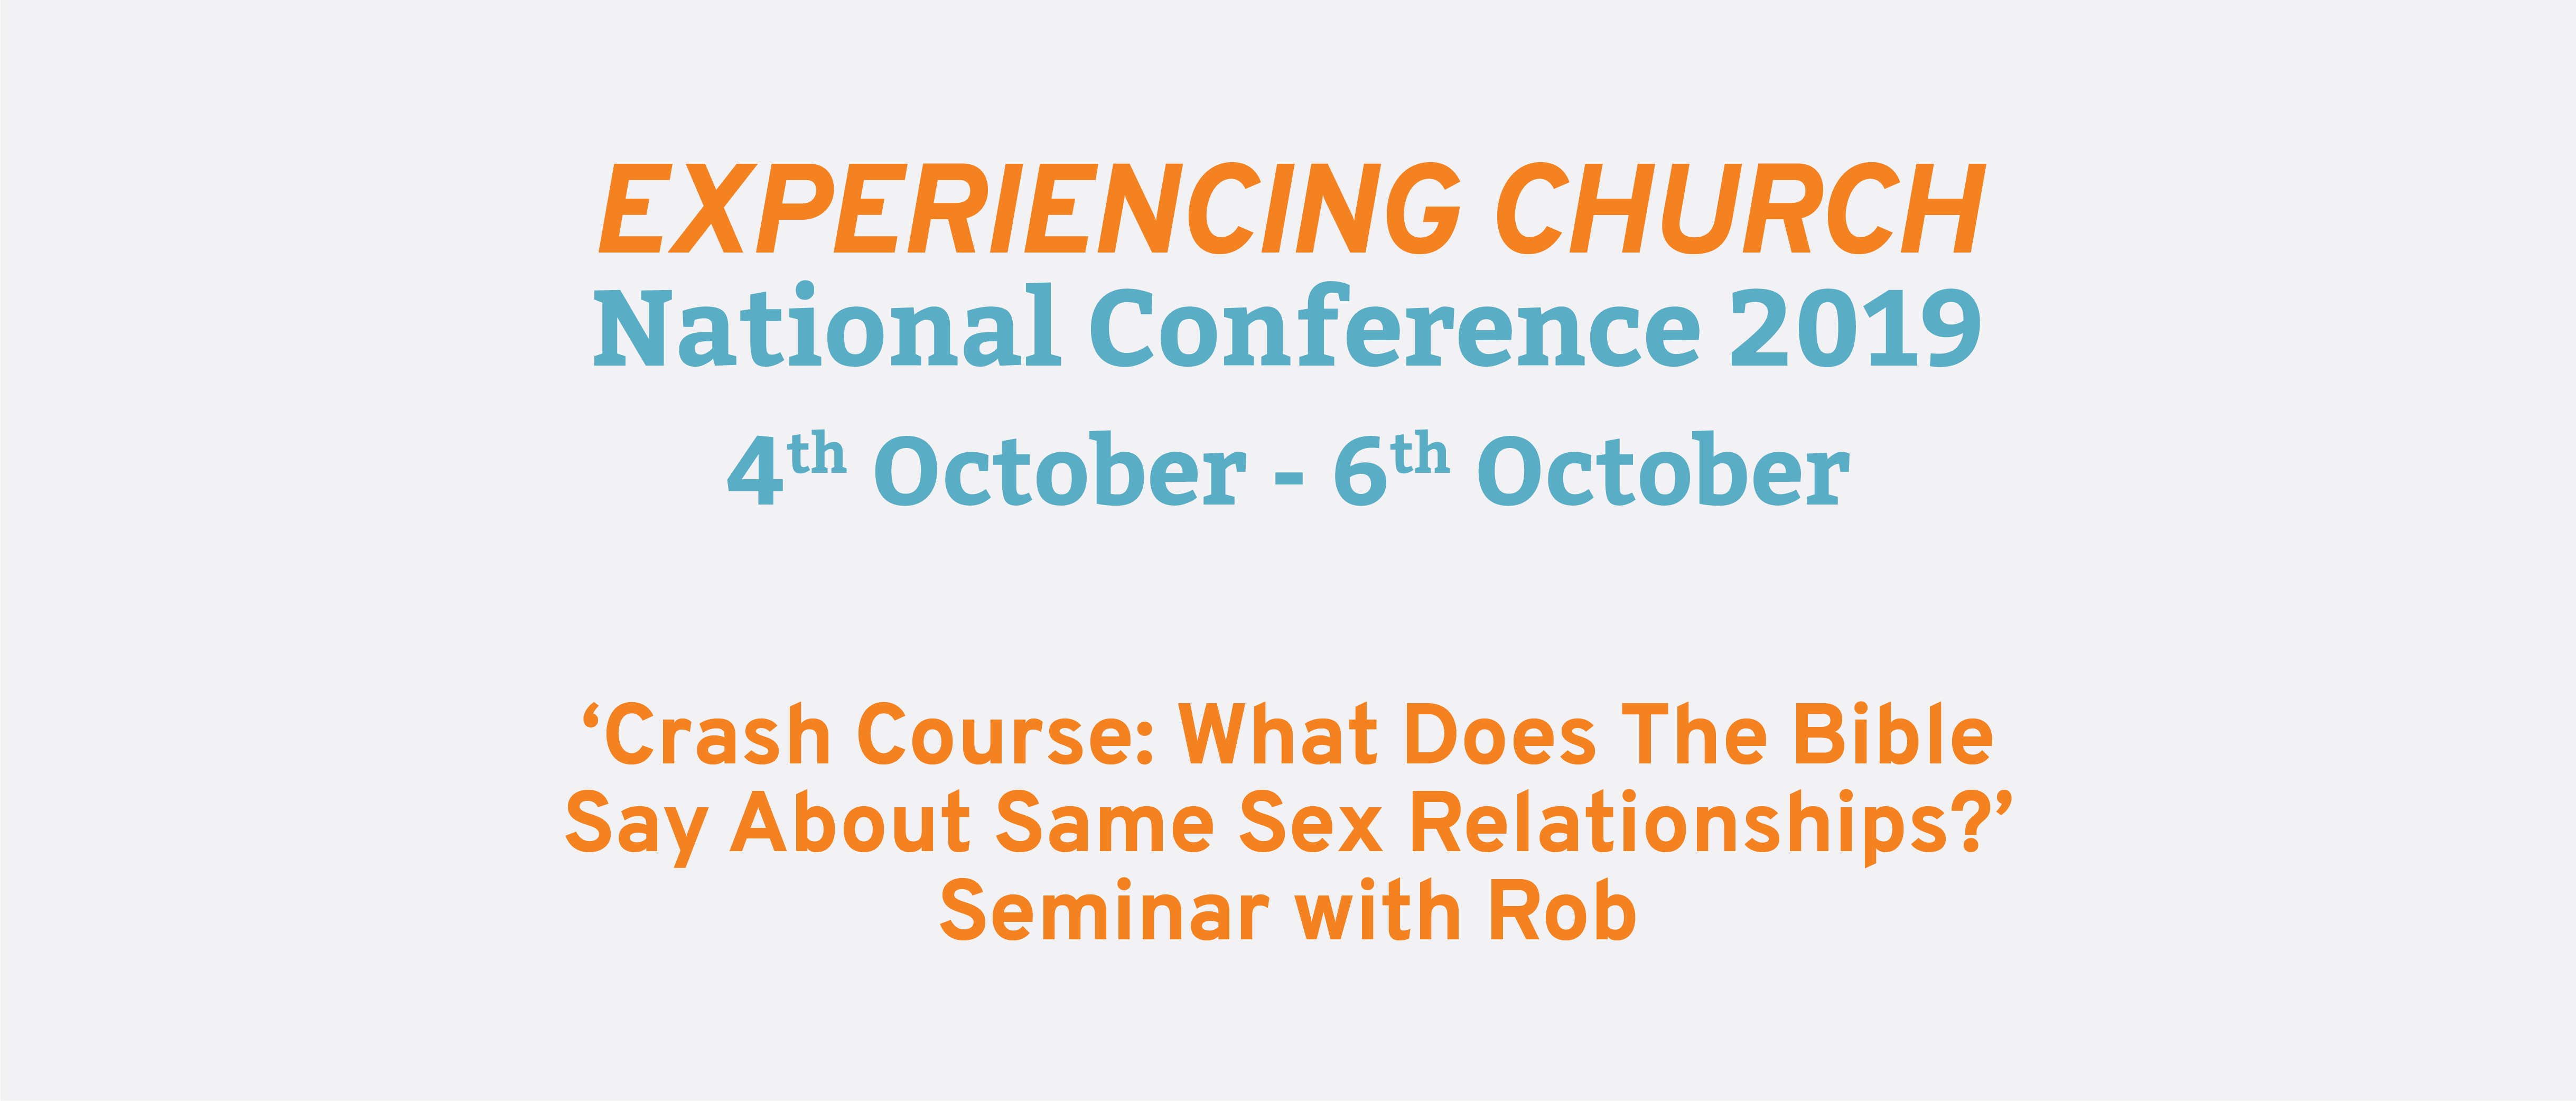 What Does The Bible Say About Same Sex Relationships? (National Conference 2019 Seminar 3)